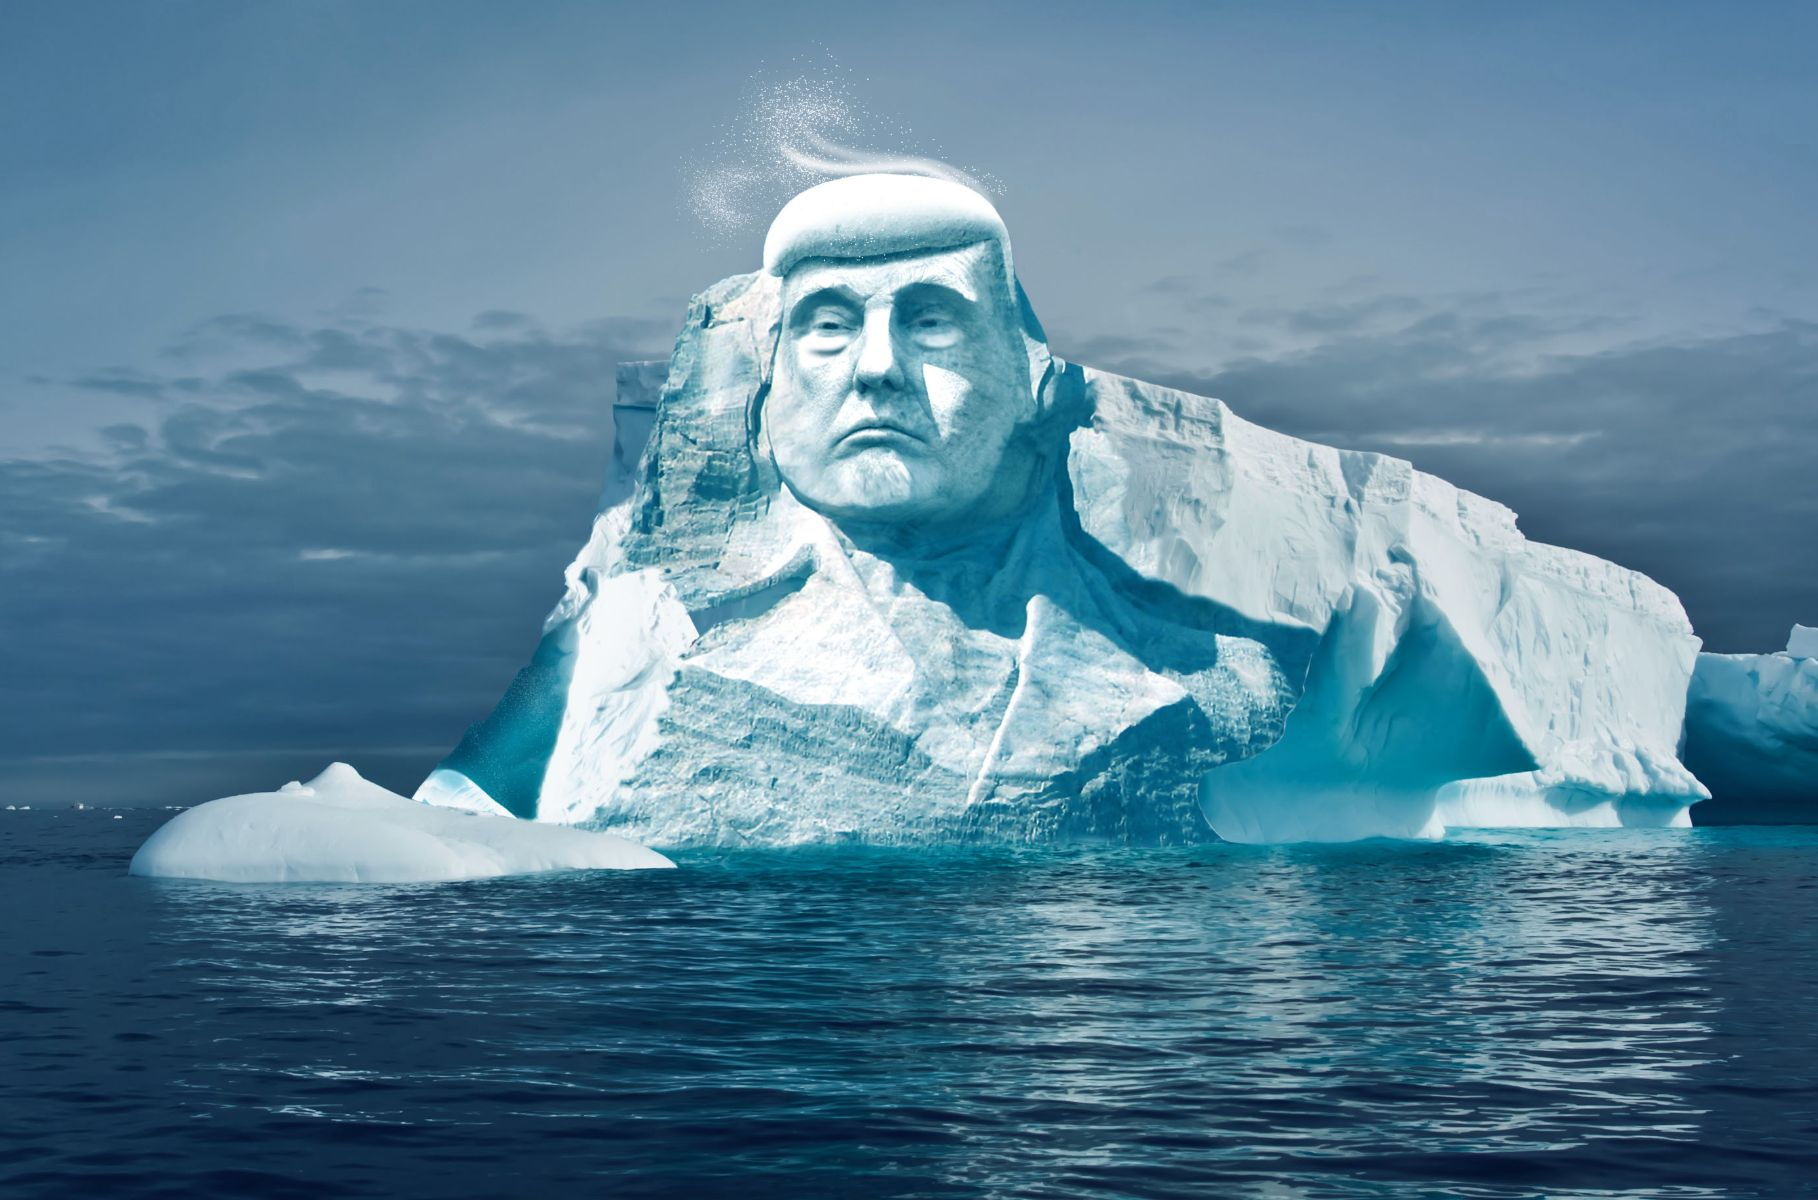 Climate Change Activists Plan To Carve Trump's Face Into An Iceberg And Watch It